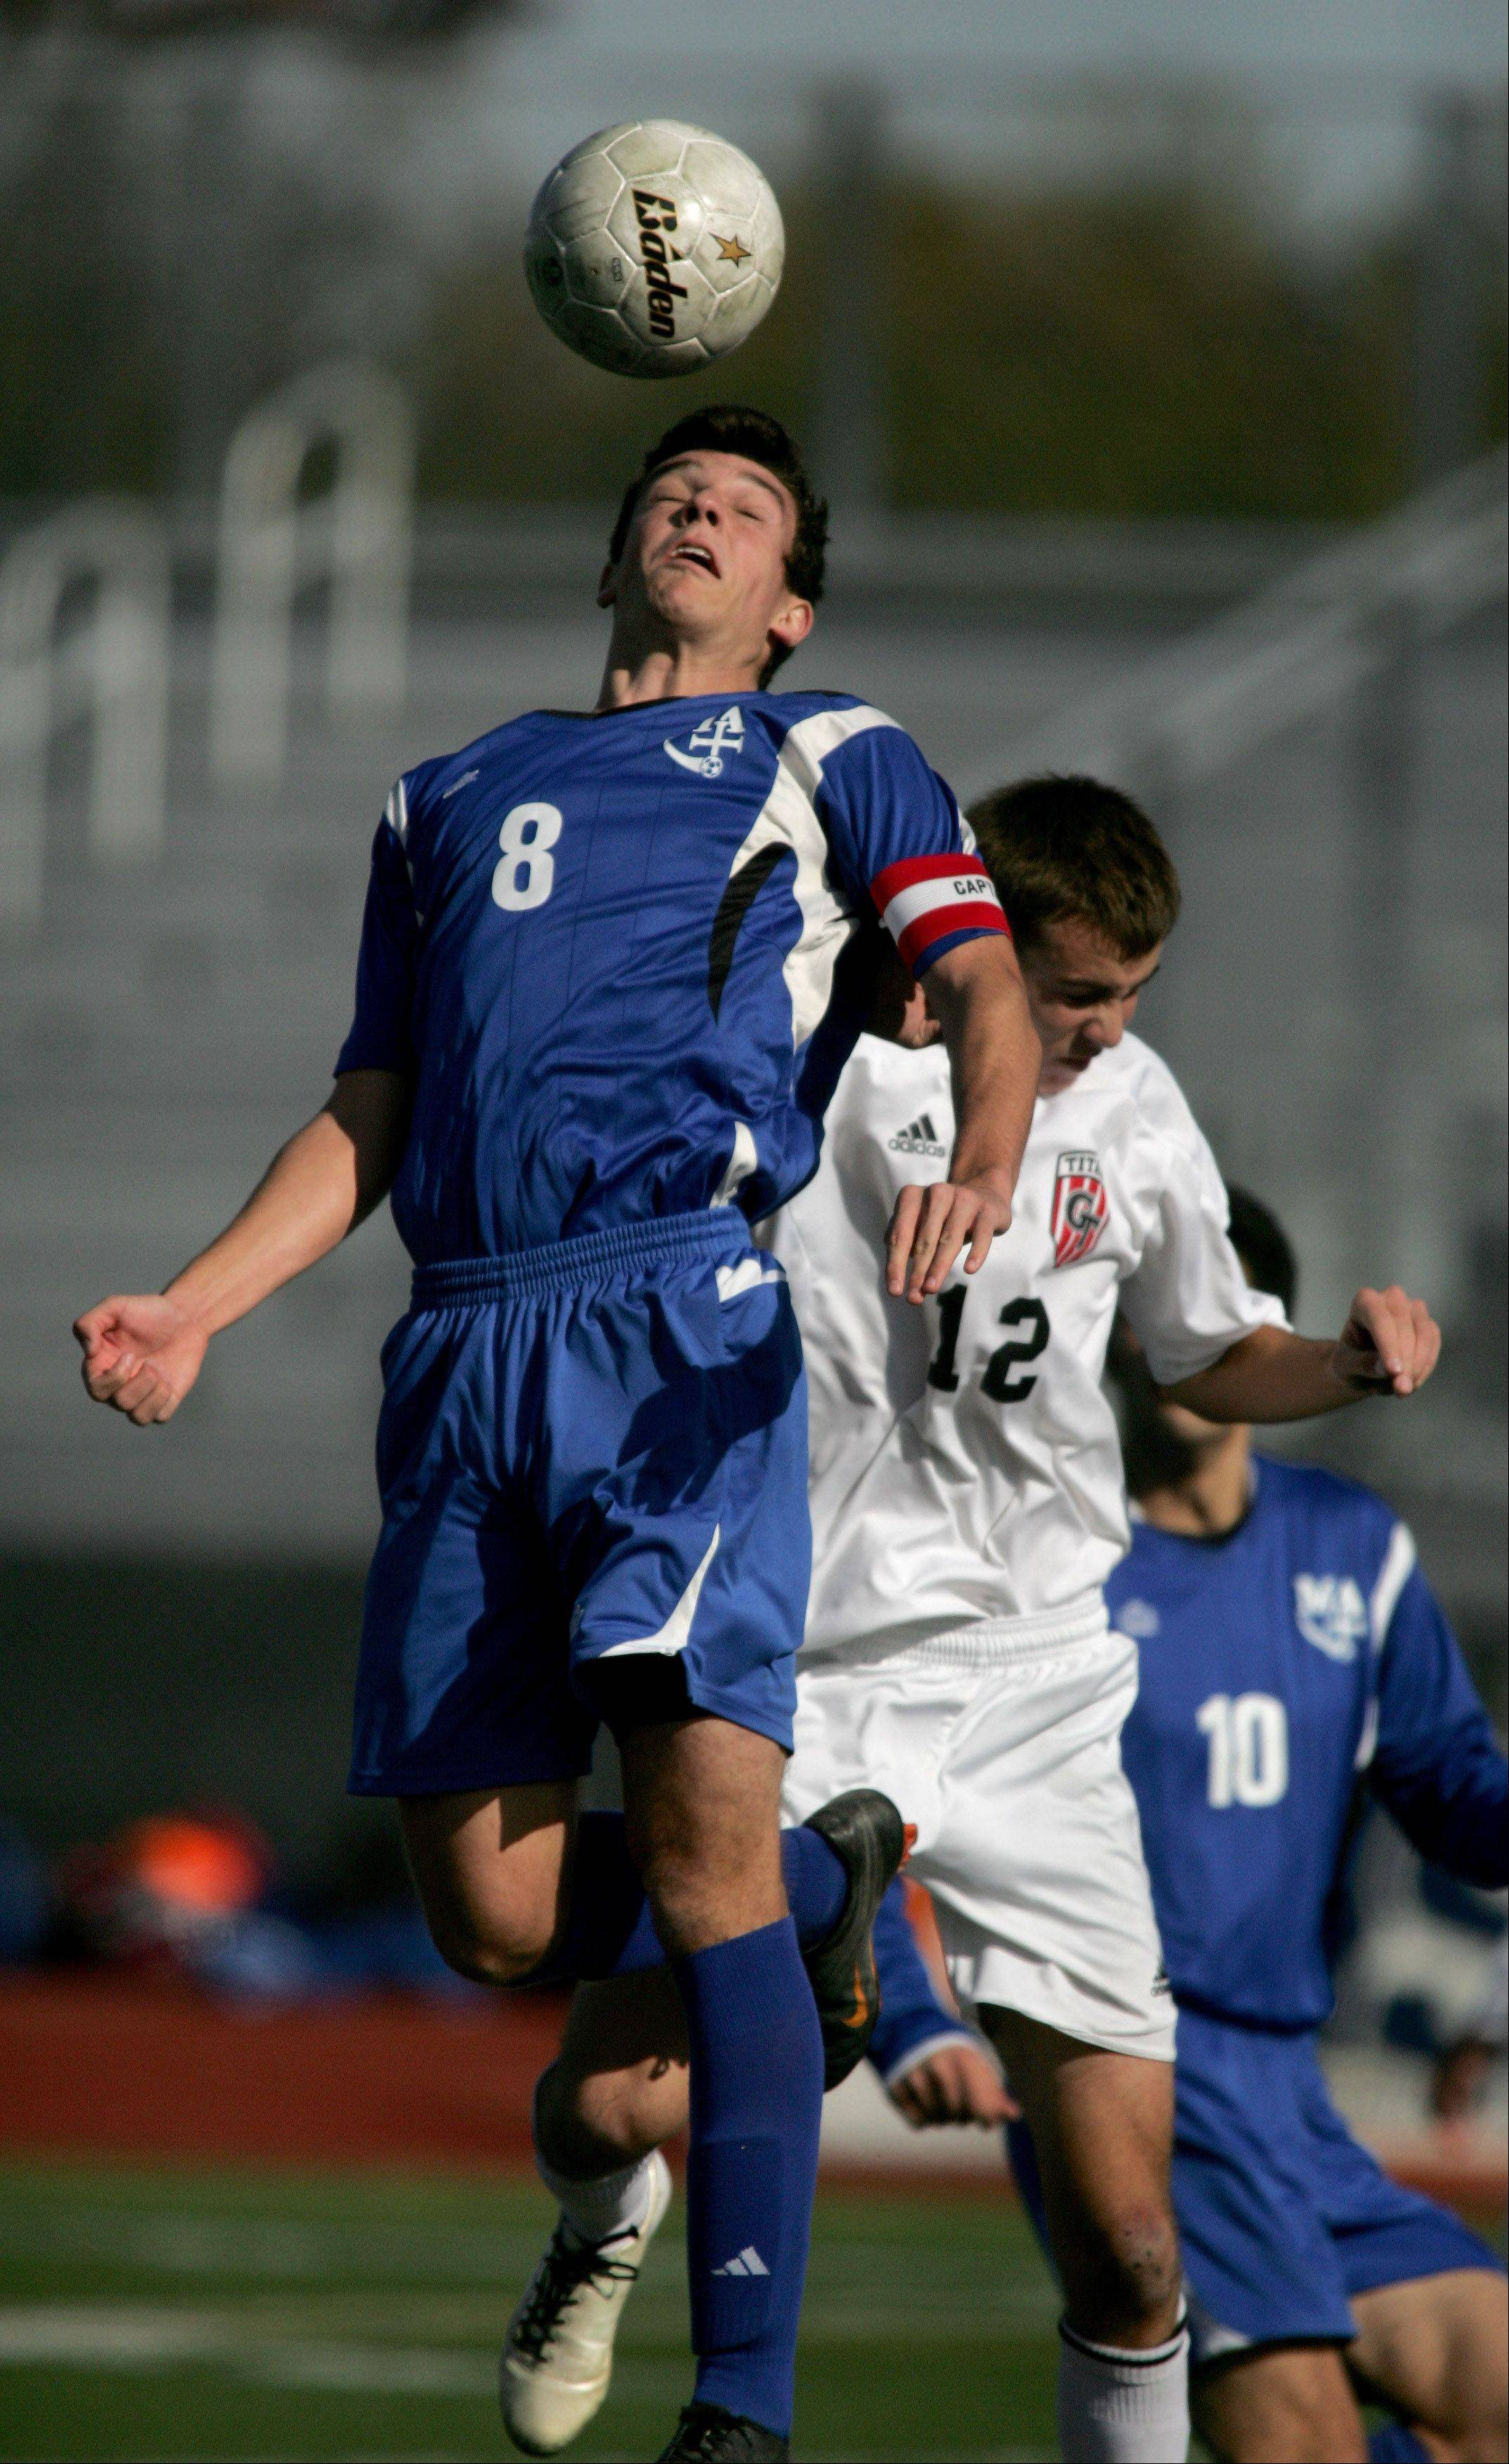 Marmion's Mike Frasca goes up for the header against Chatham Glenwood in Class 2A state soccer semifinals Friday at Lincoln-Way North High School in Frankfort.